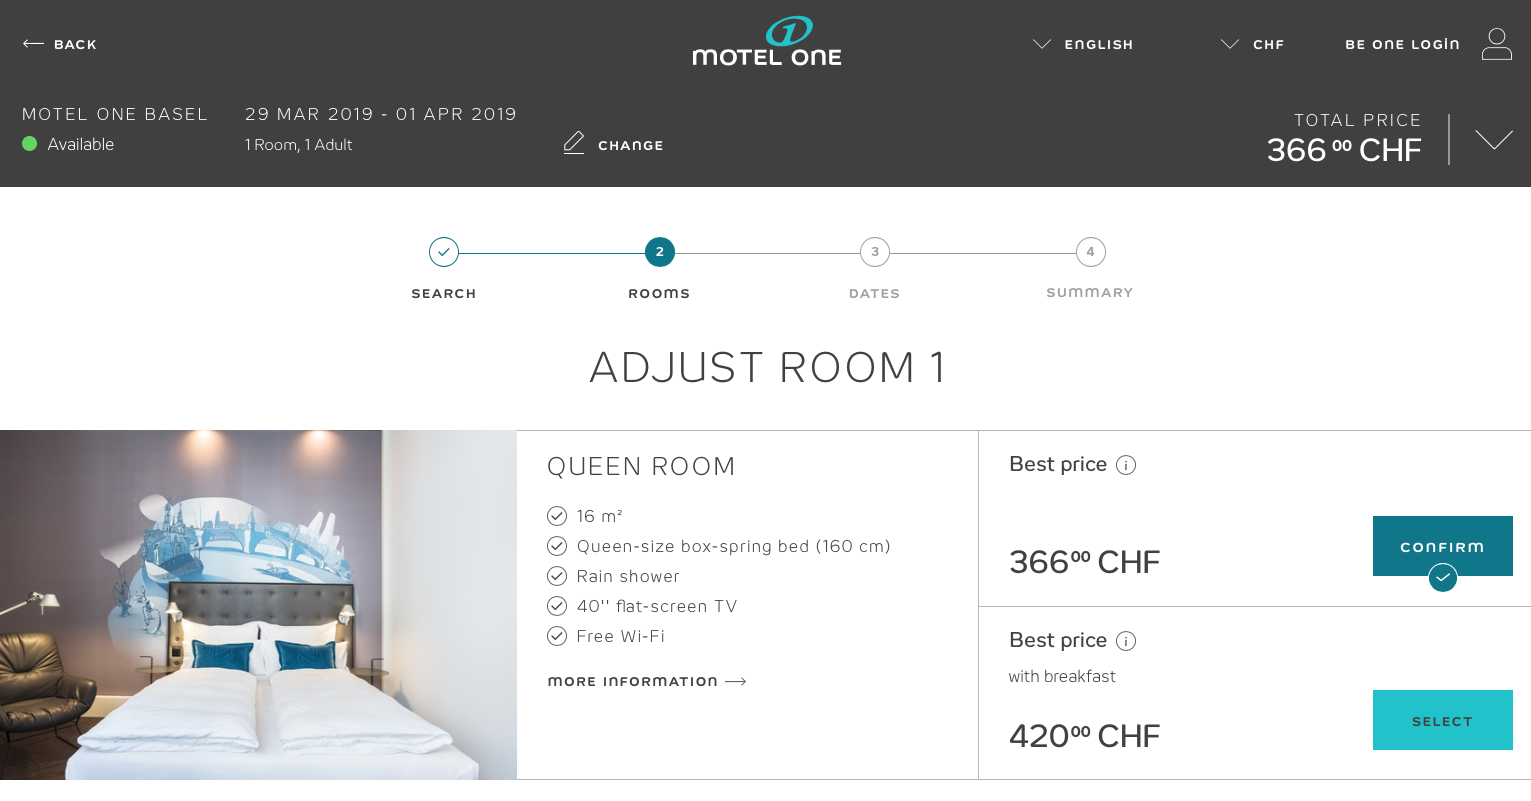 Motel One Baselworld 2019